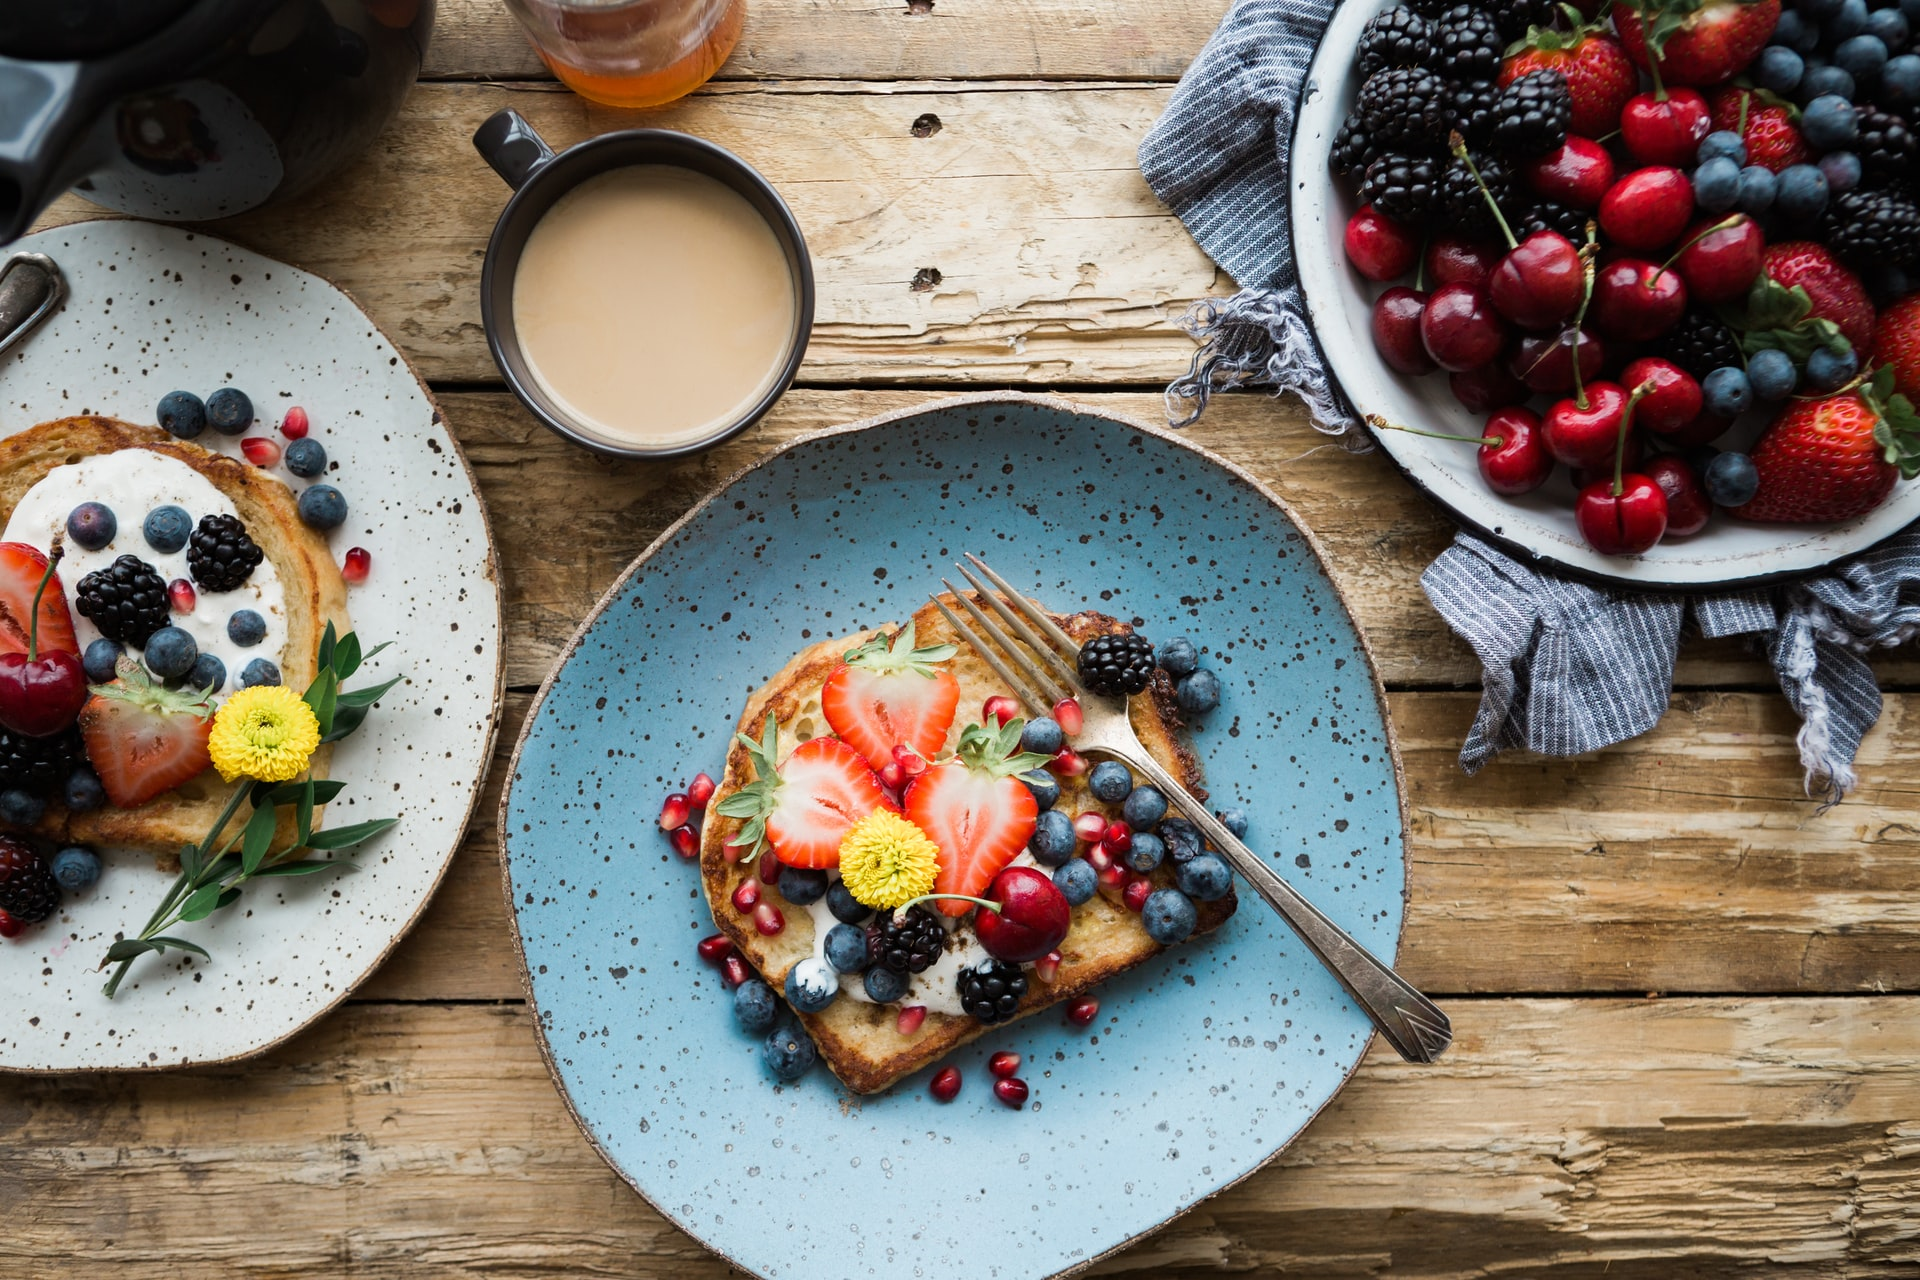 The 10 Best Brunch and Breakfast Spots in the Bronx